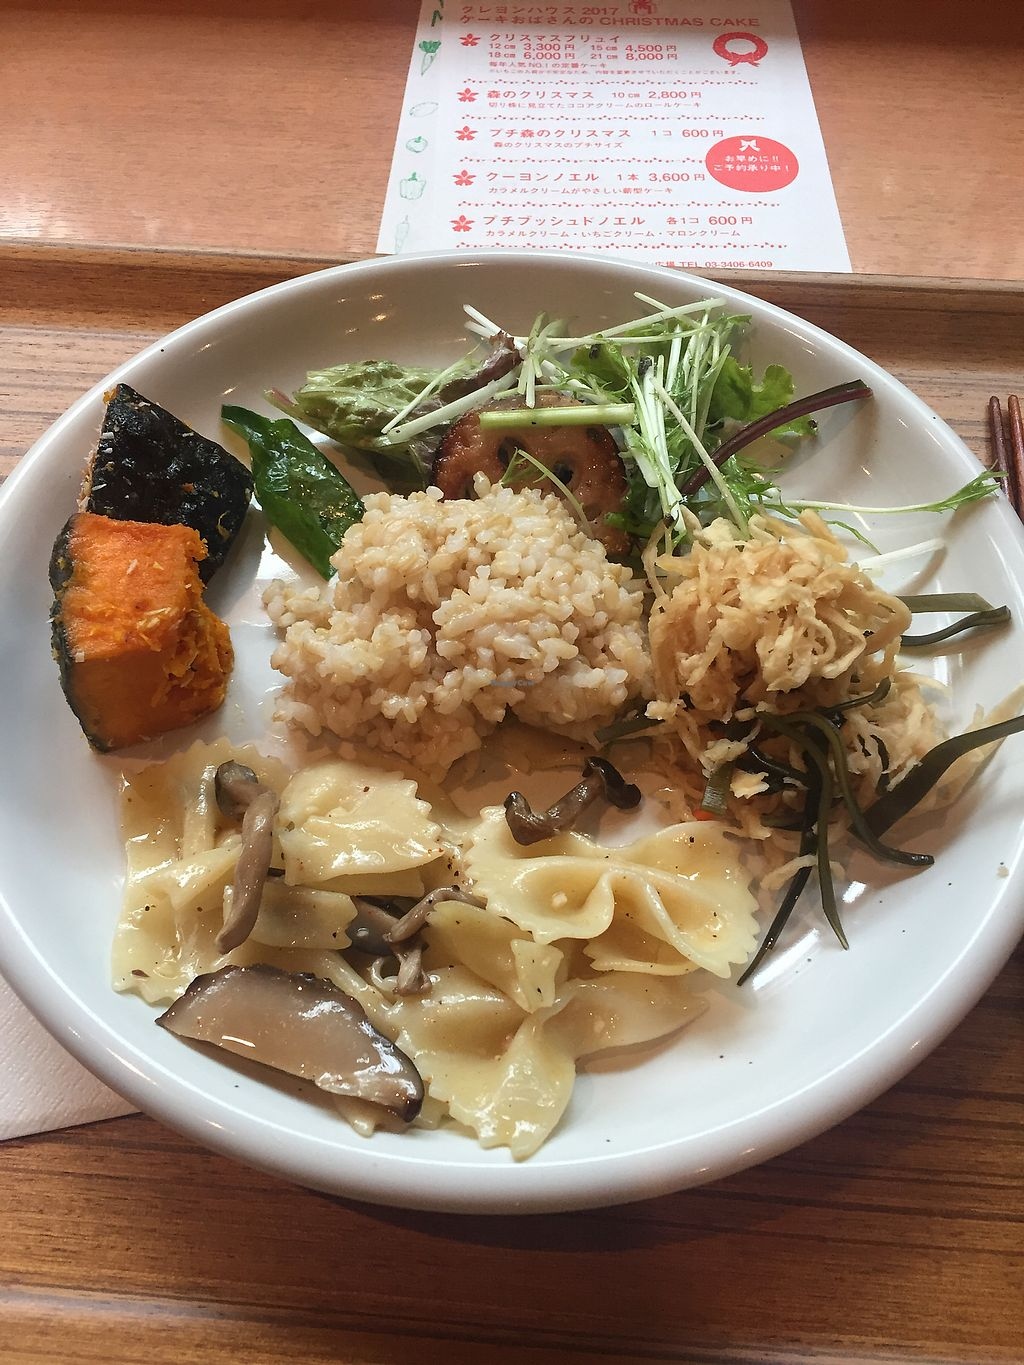 """Photo of Crayon House  by <a href=""""/members/profile/veggiefoodie"""">veggiefoodie</a> <br/>Lunch buffet <br/> January 4, 2018  - <a href='/contact/abuse/image/94/342860'>Report</a>"""